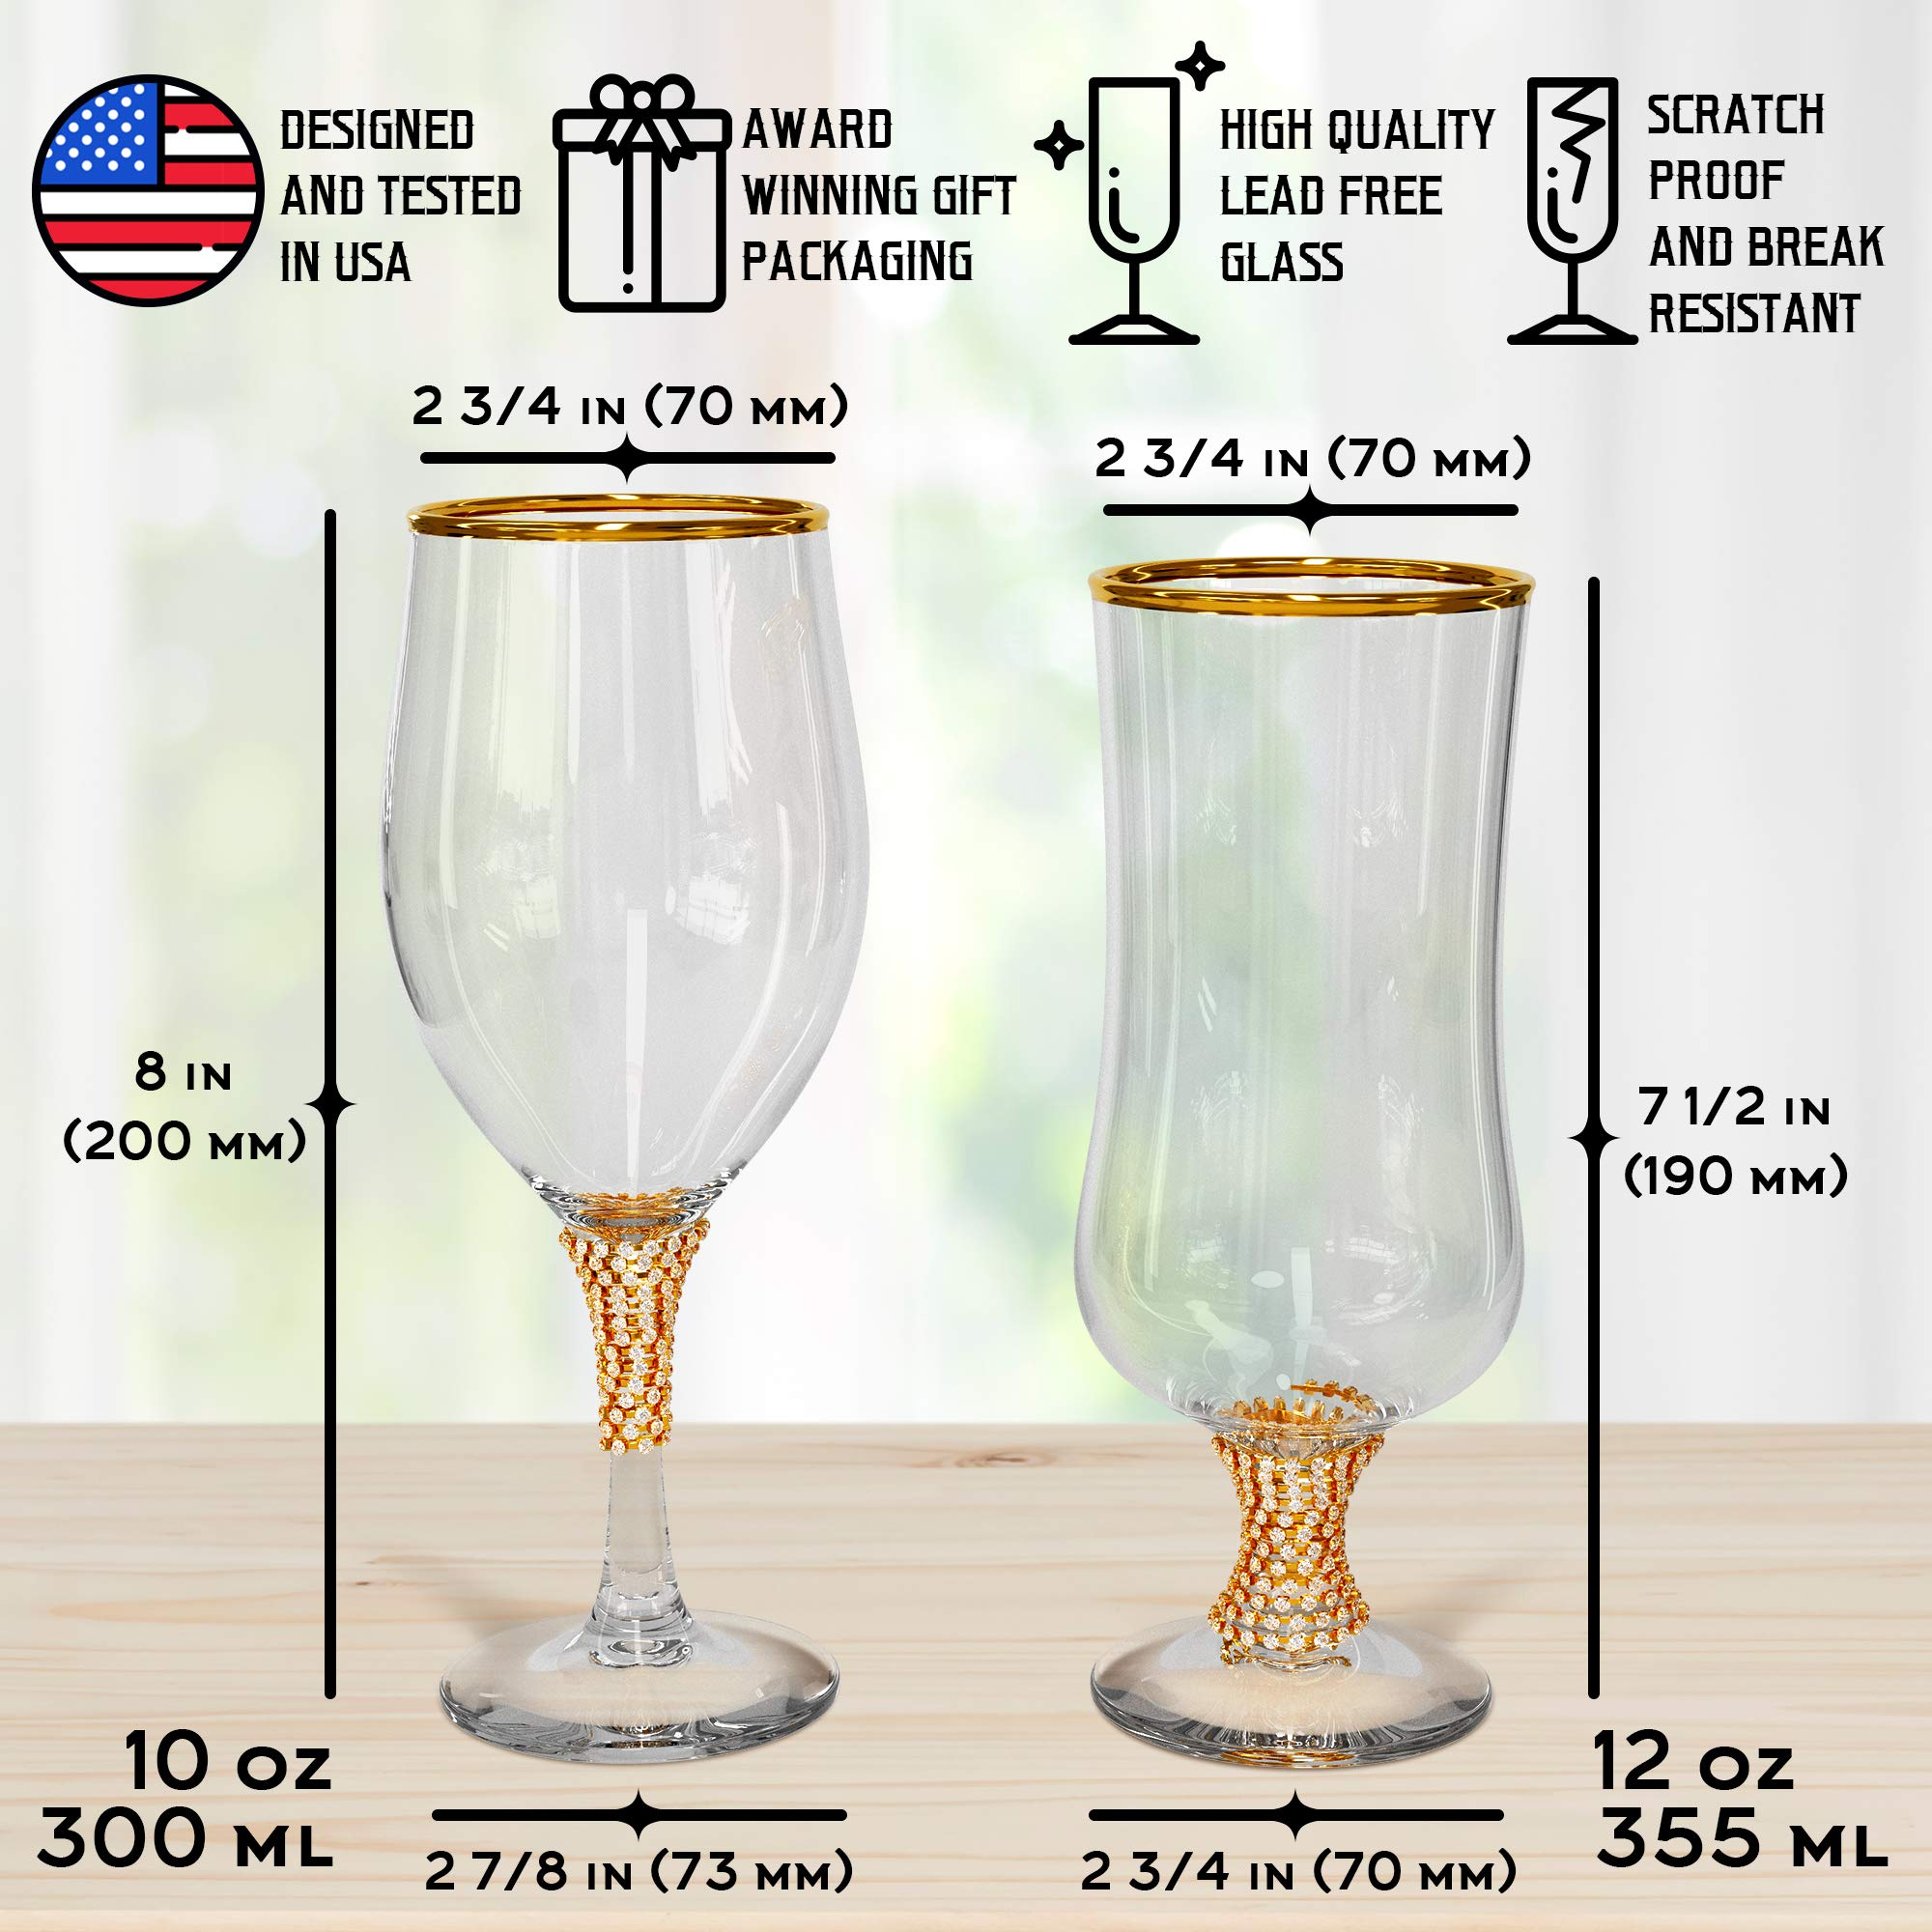 Newlywed Gifts for Couple, Luxury Mr and Mrs Wine Glass Set, Best Engagement Gift for Wedding, Bridal Shower, Bride and Groom, Unique Anniversary Present for Newly Married Couples, Just Engaged